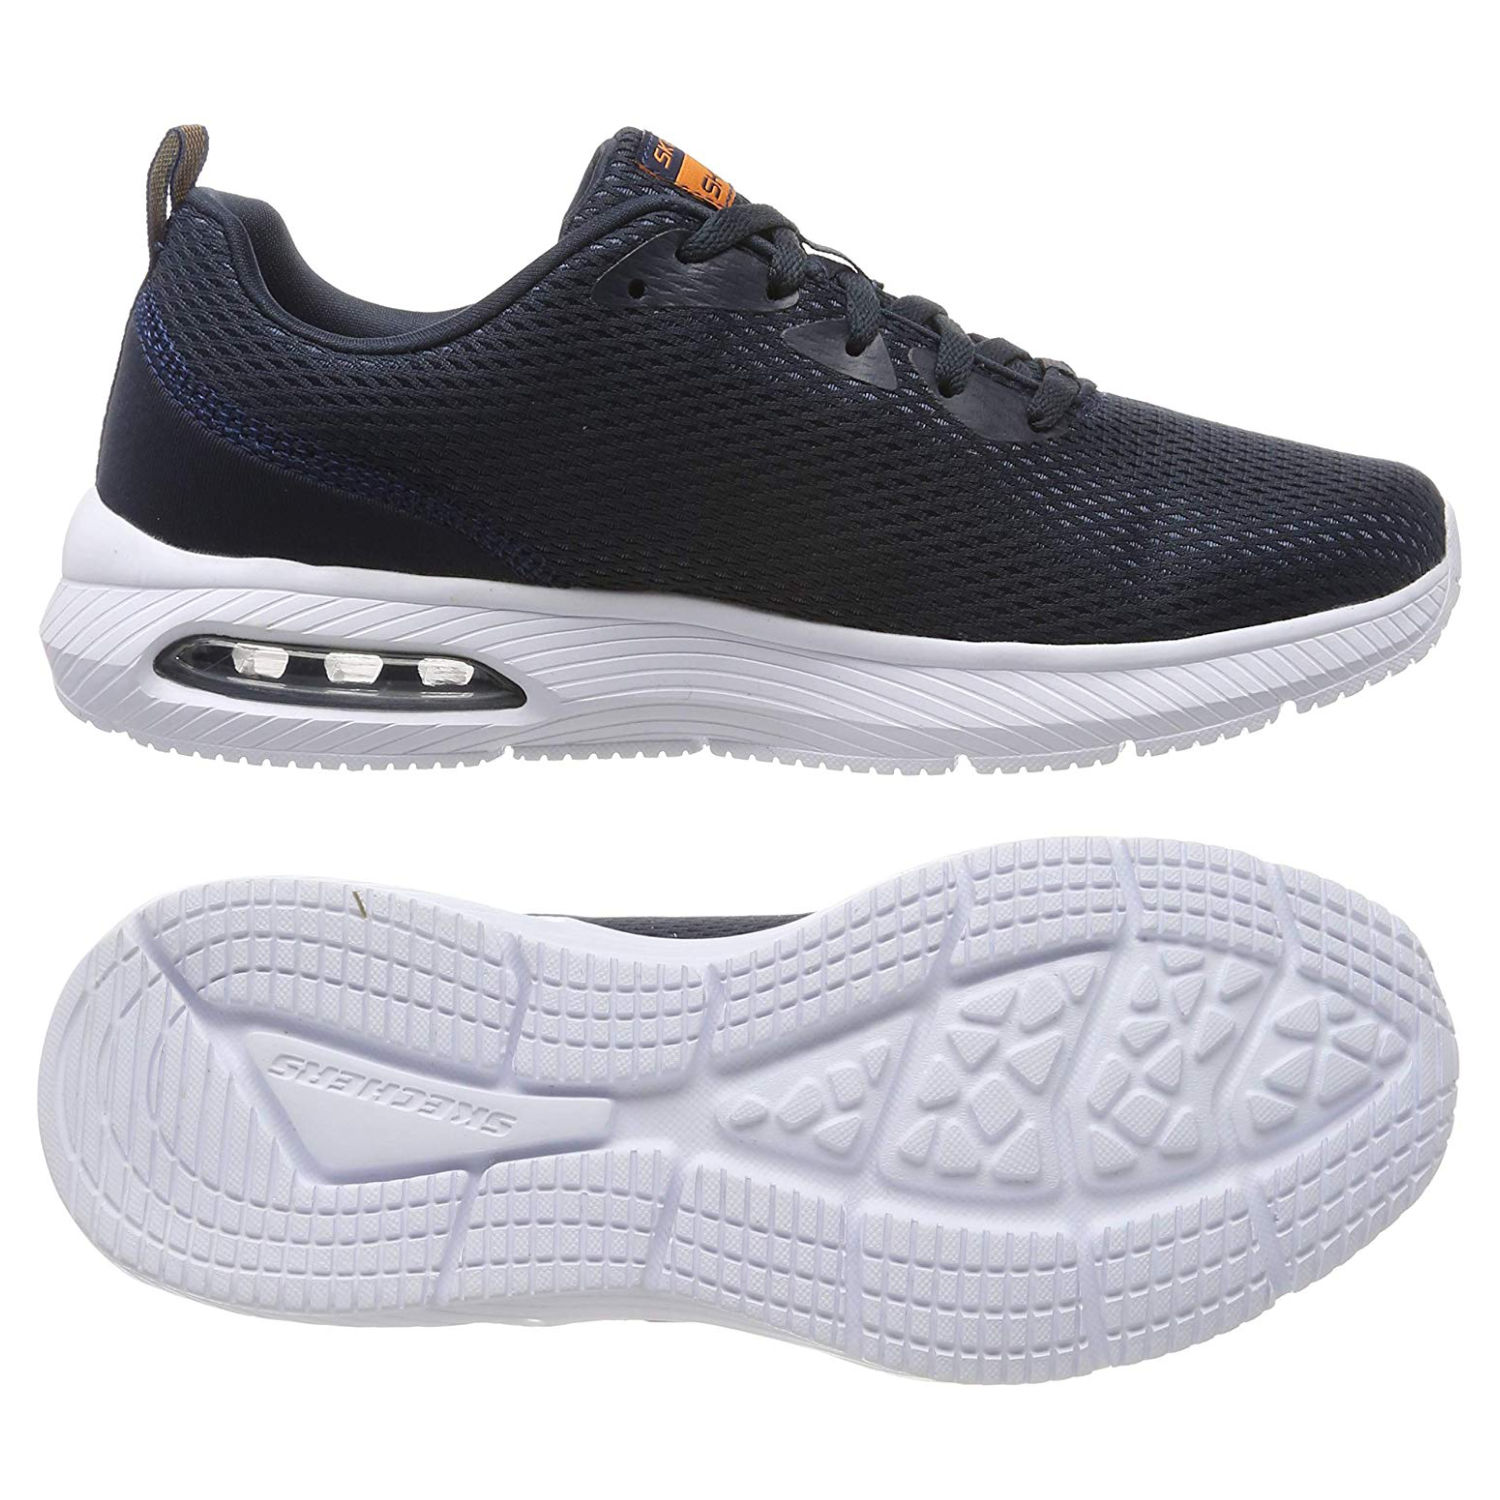 Skechers Dyna-Air Mens Training Shoes - 8 UK